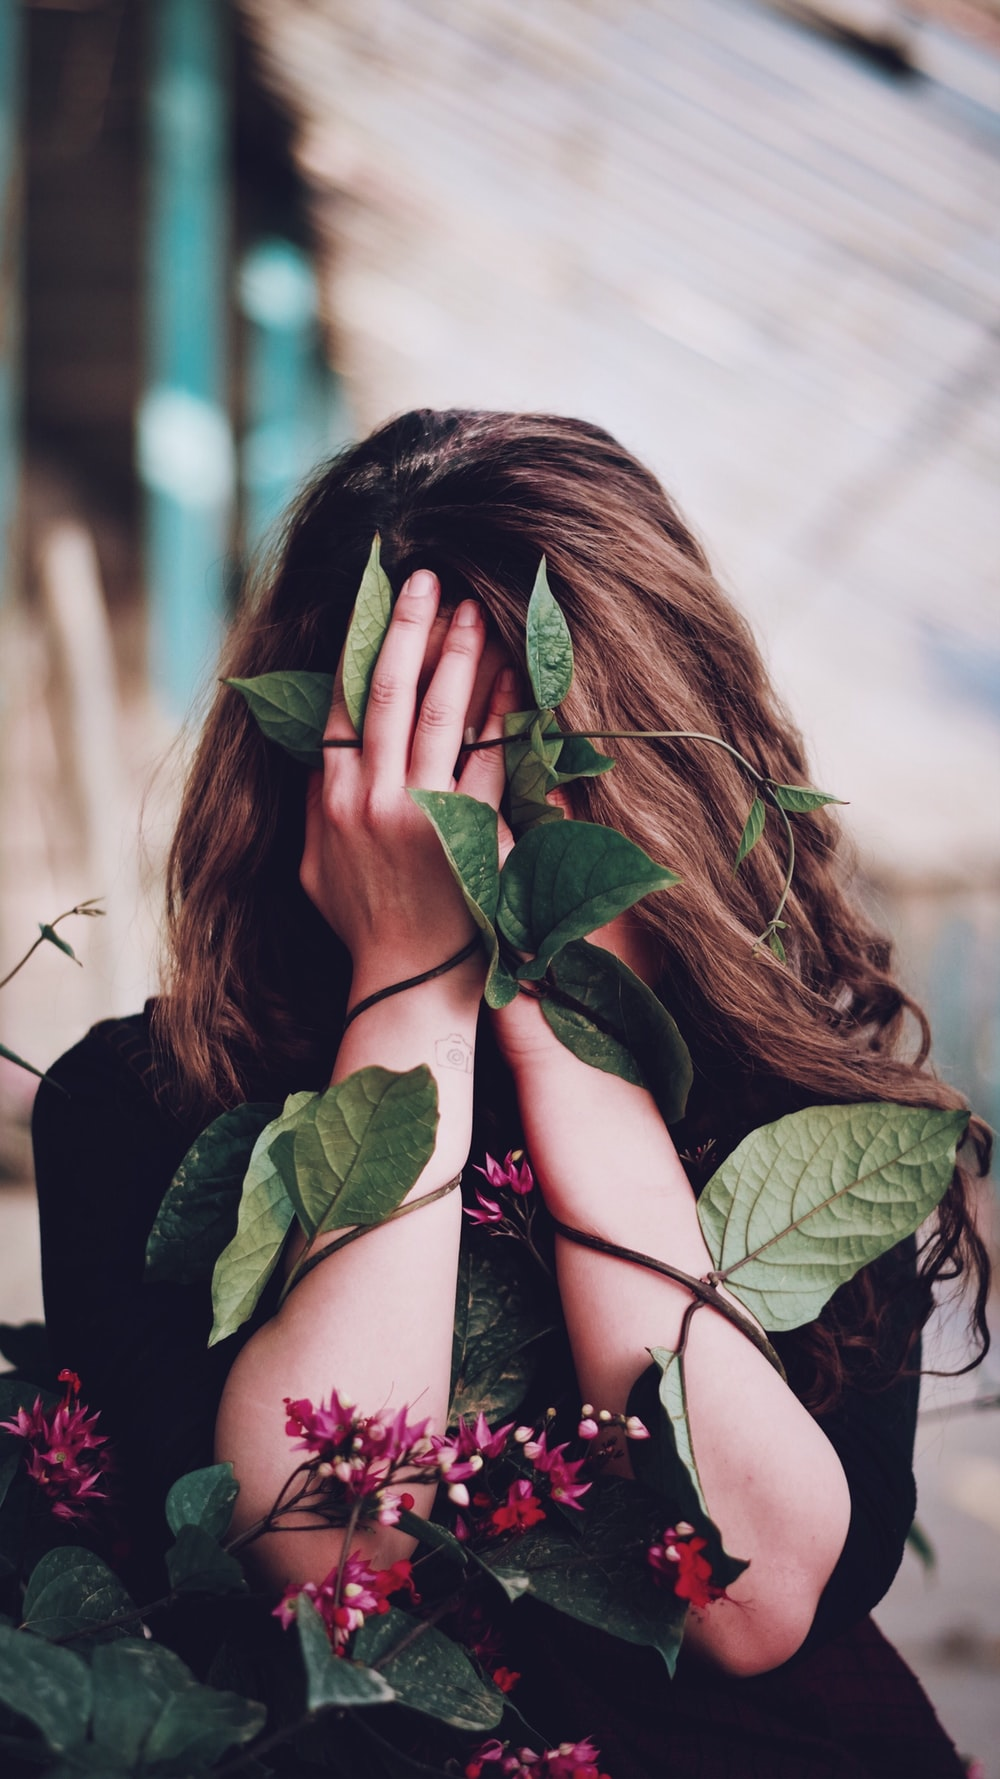 woman covering her face with green leaves